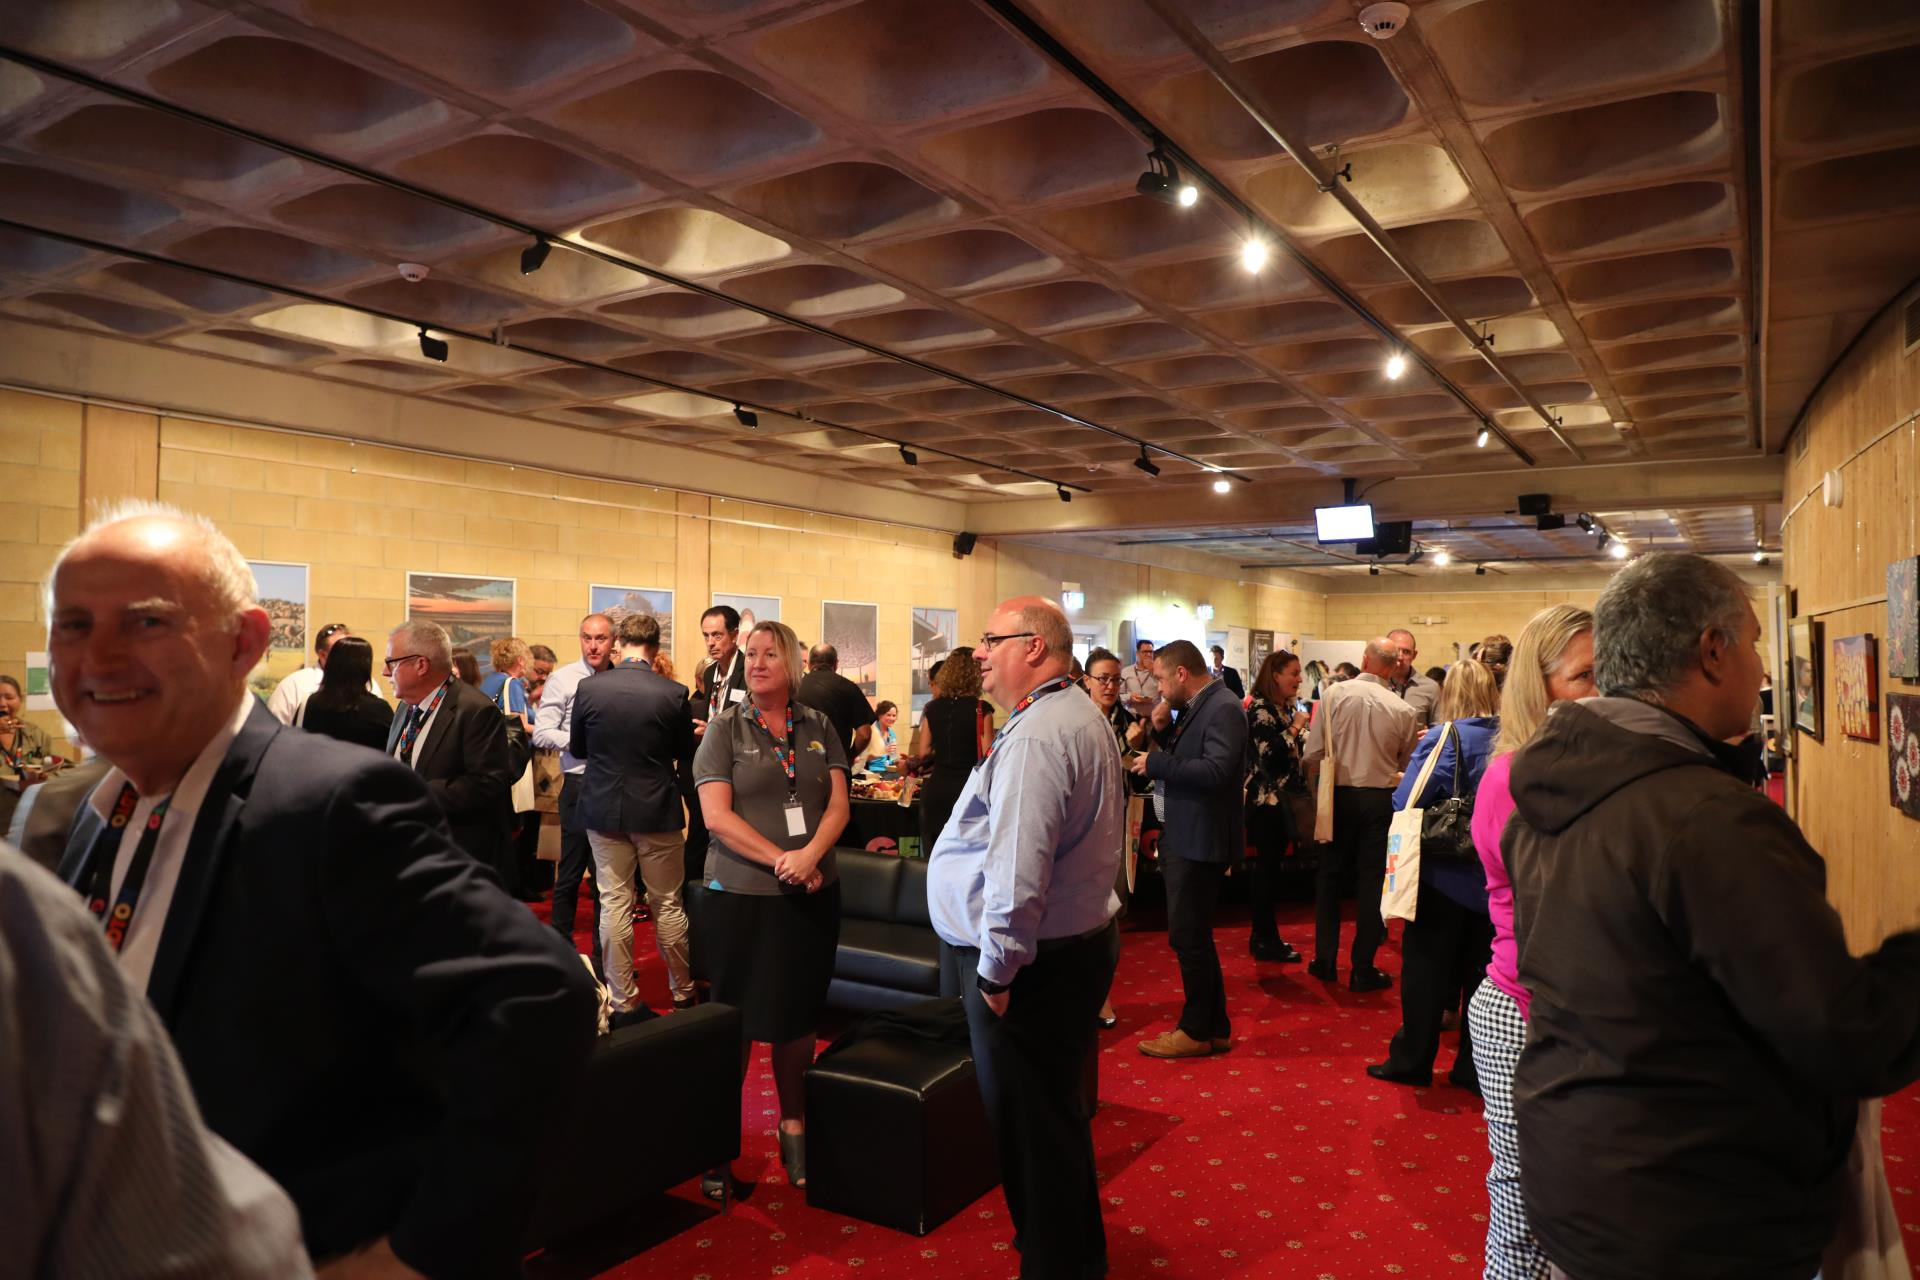 Over 230 delegates attended the Summit and enjoyed opportunities to network with government and industry representatives.